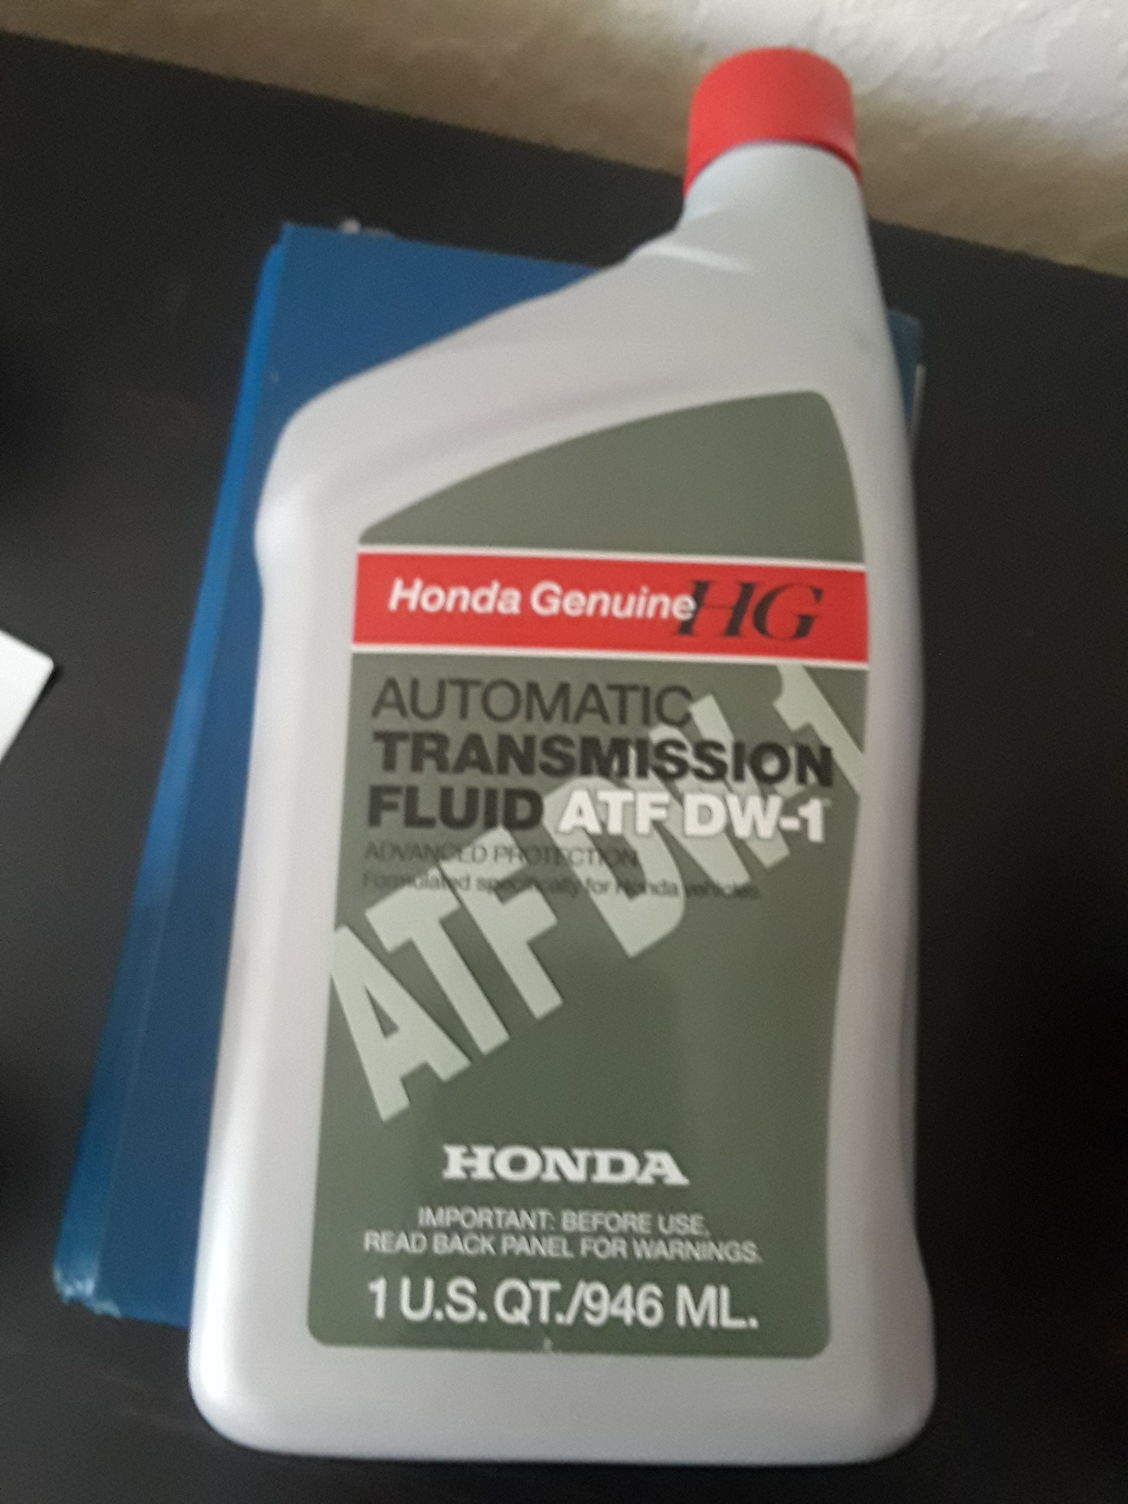 USE ONLY HONDA ATF. MESS AROUND WITH ANY OTHER BS AND YOU WILL BE SORRY.  $10 A QUART ON AMAZON.